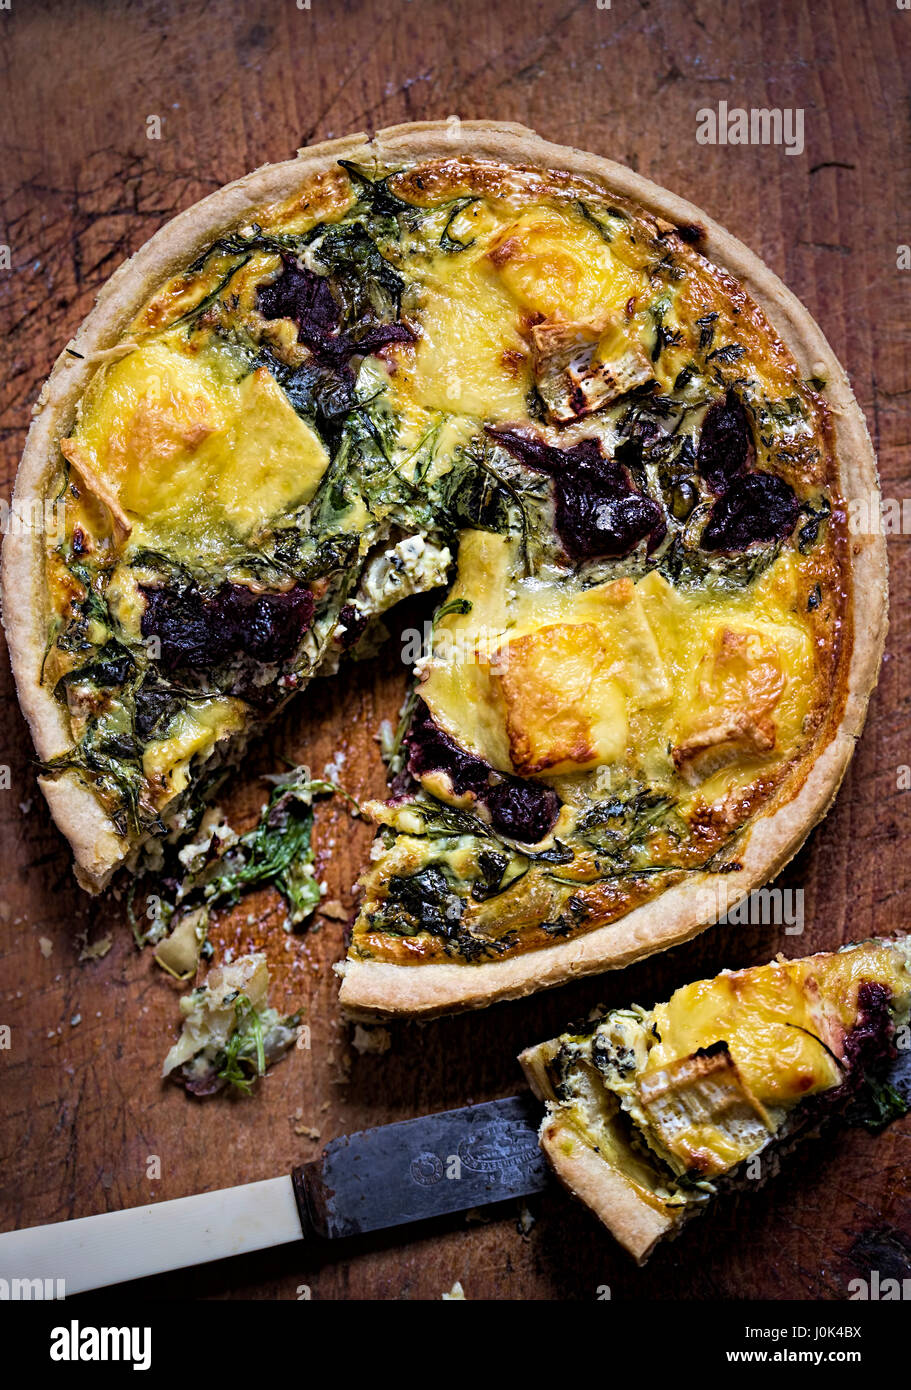 Festive brie, rocket leaves and cranberries quiche - Stock Image